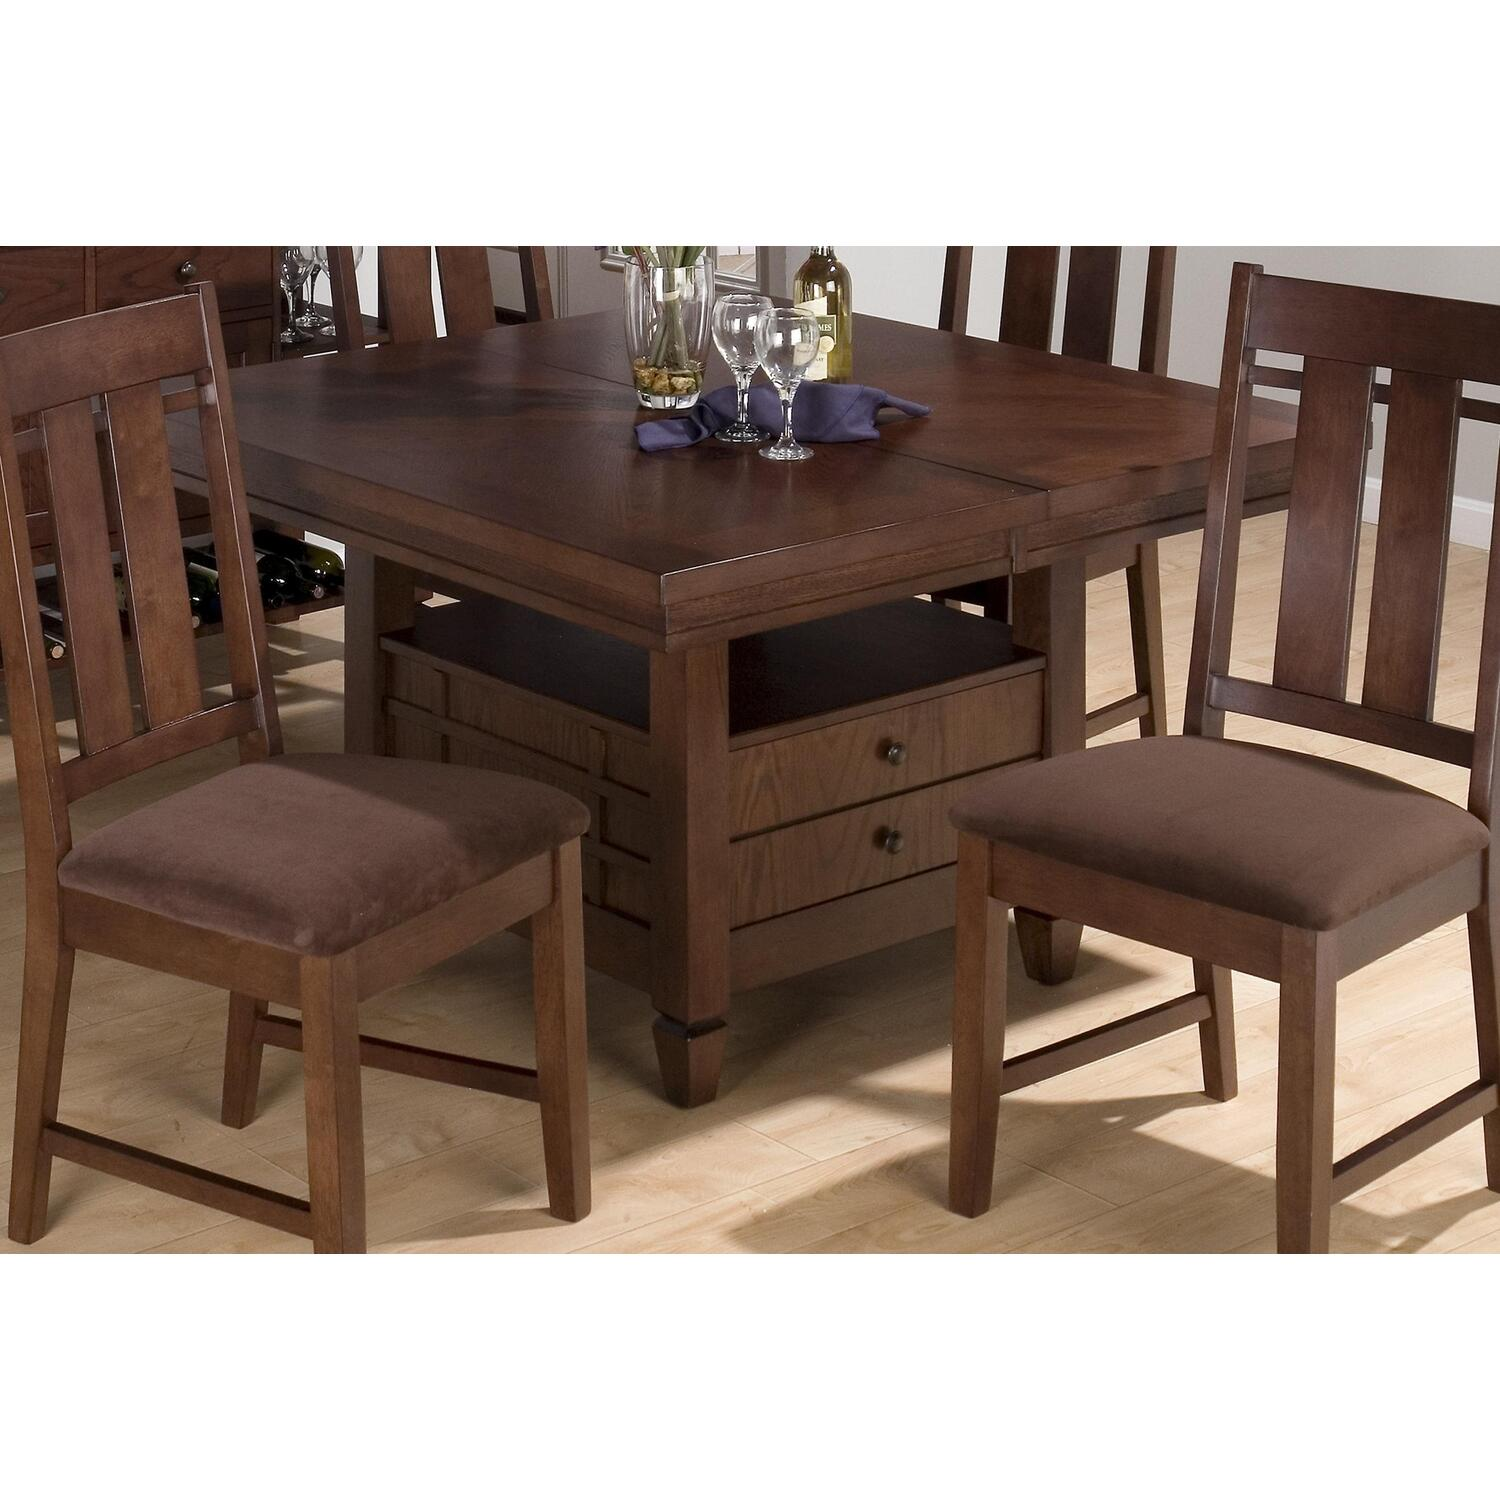 Jofran muir oak finished dining table by oj commerce 403 for 99 dining table